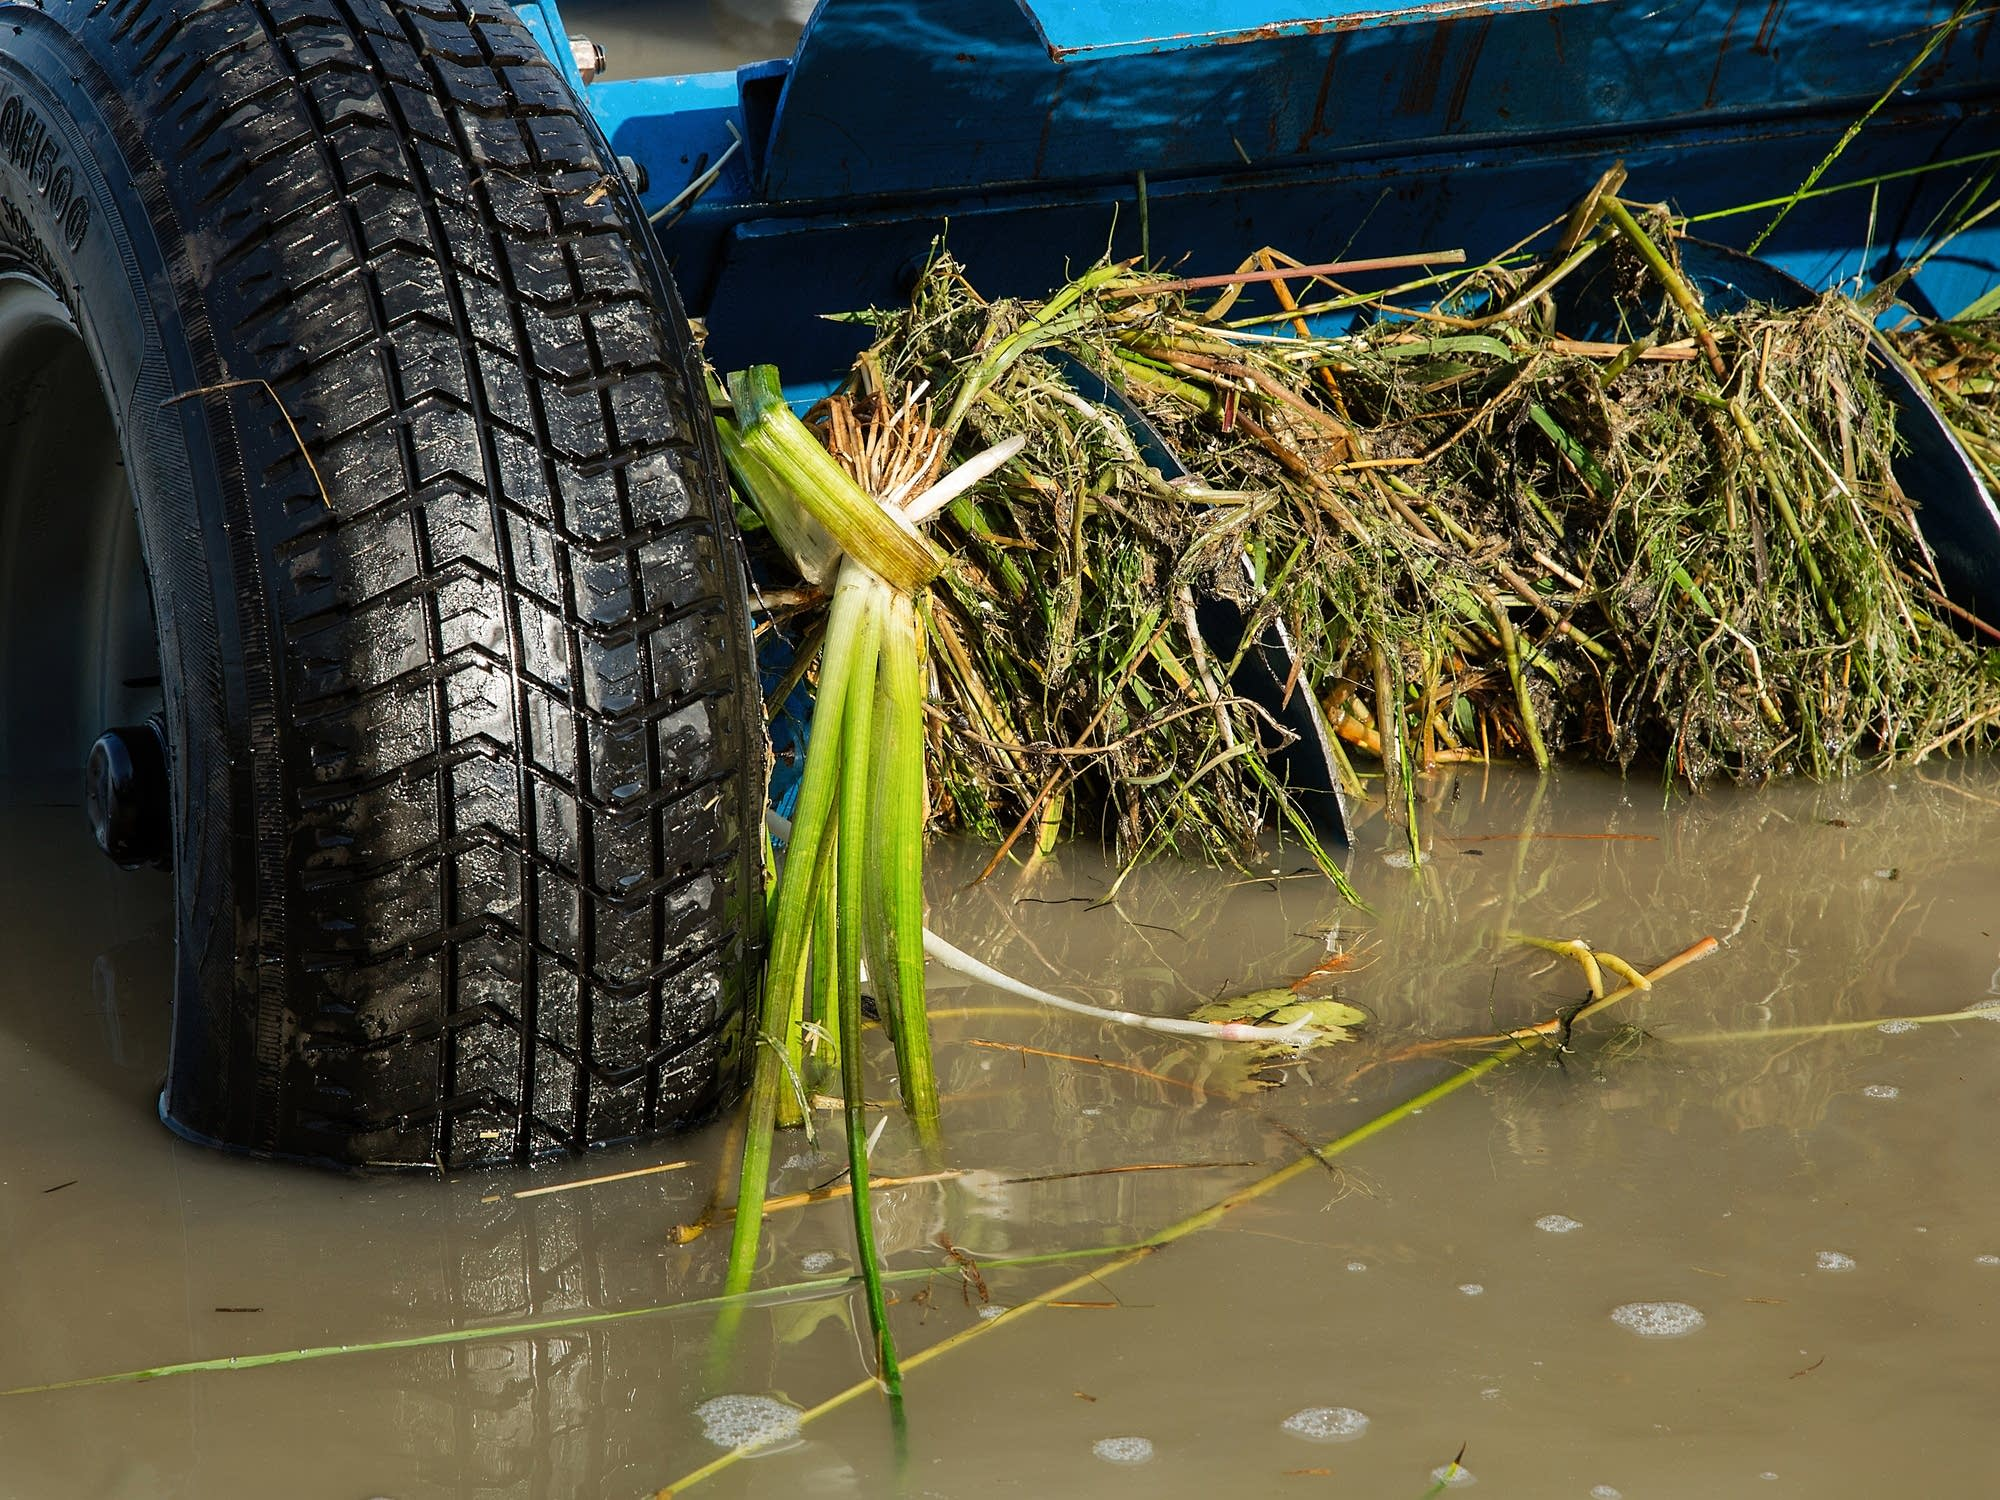 An auger clogged with starry stonewort